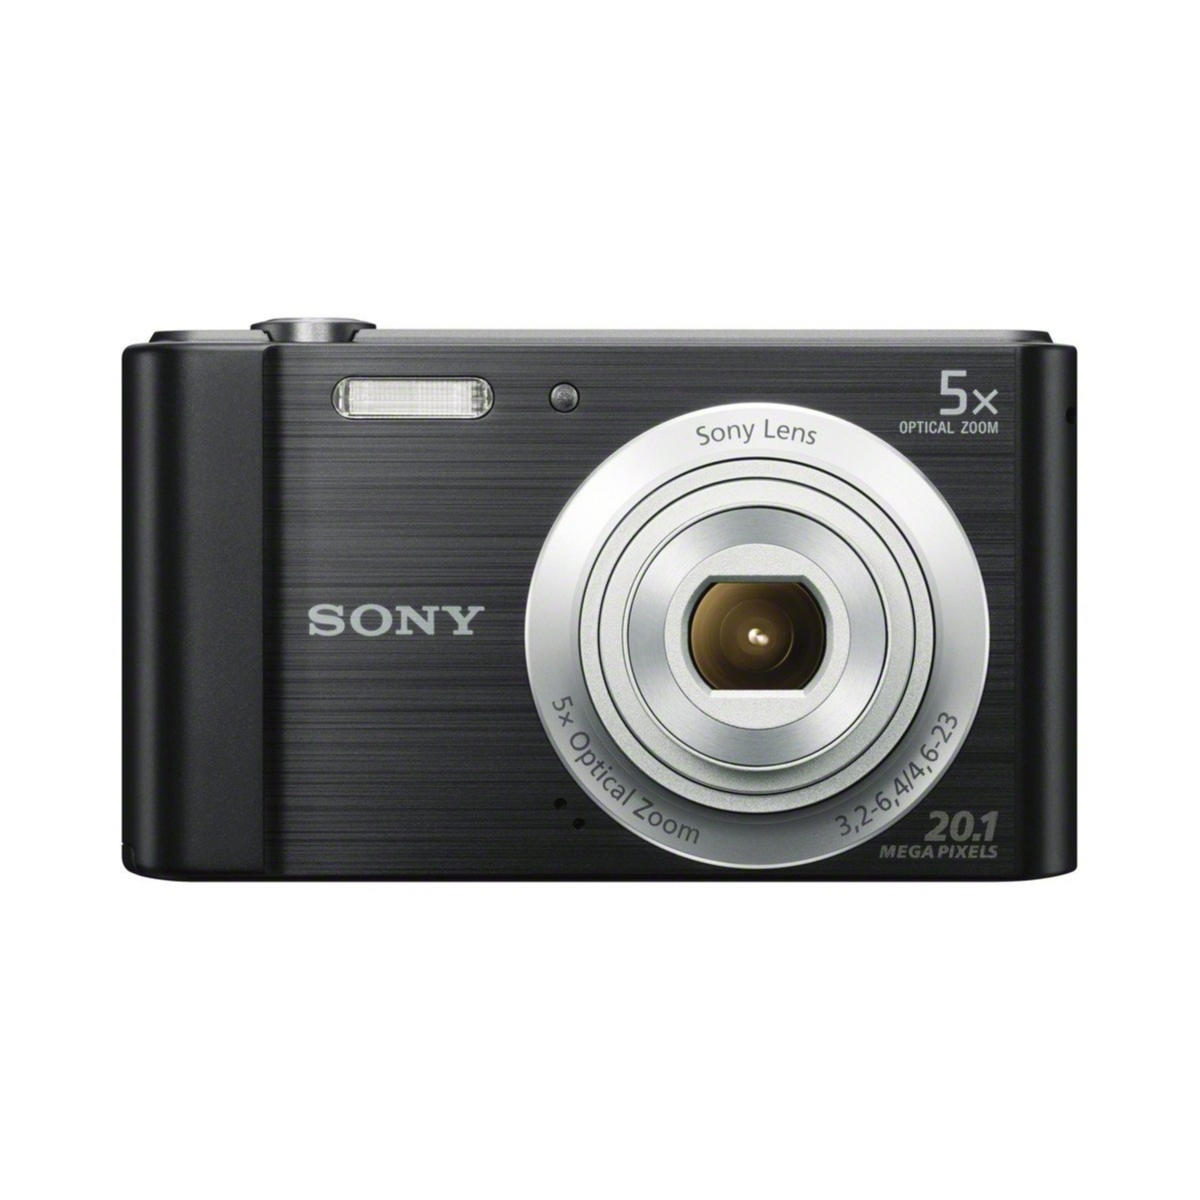 Buy Sony DSCW800/B 20.1 MP Digital Camera (Black) Online at Low Price in India | Sony Camera Reviews & Ratings - Amazon.in